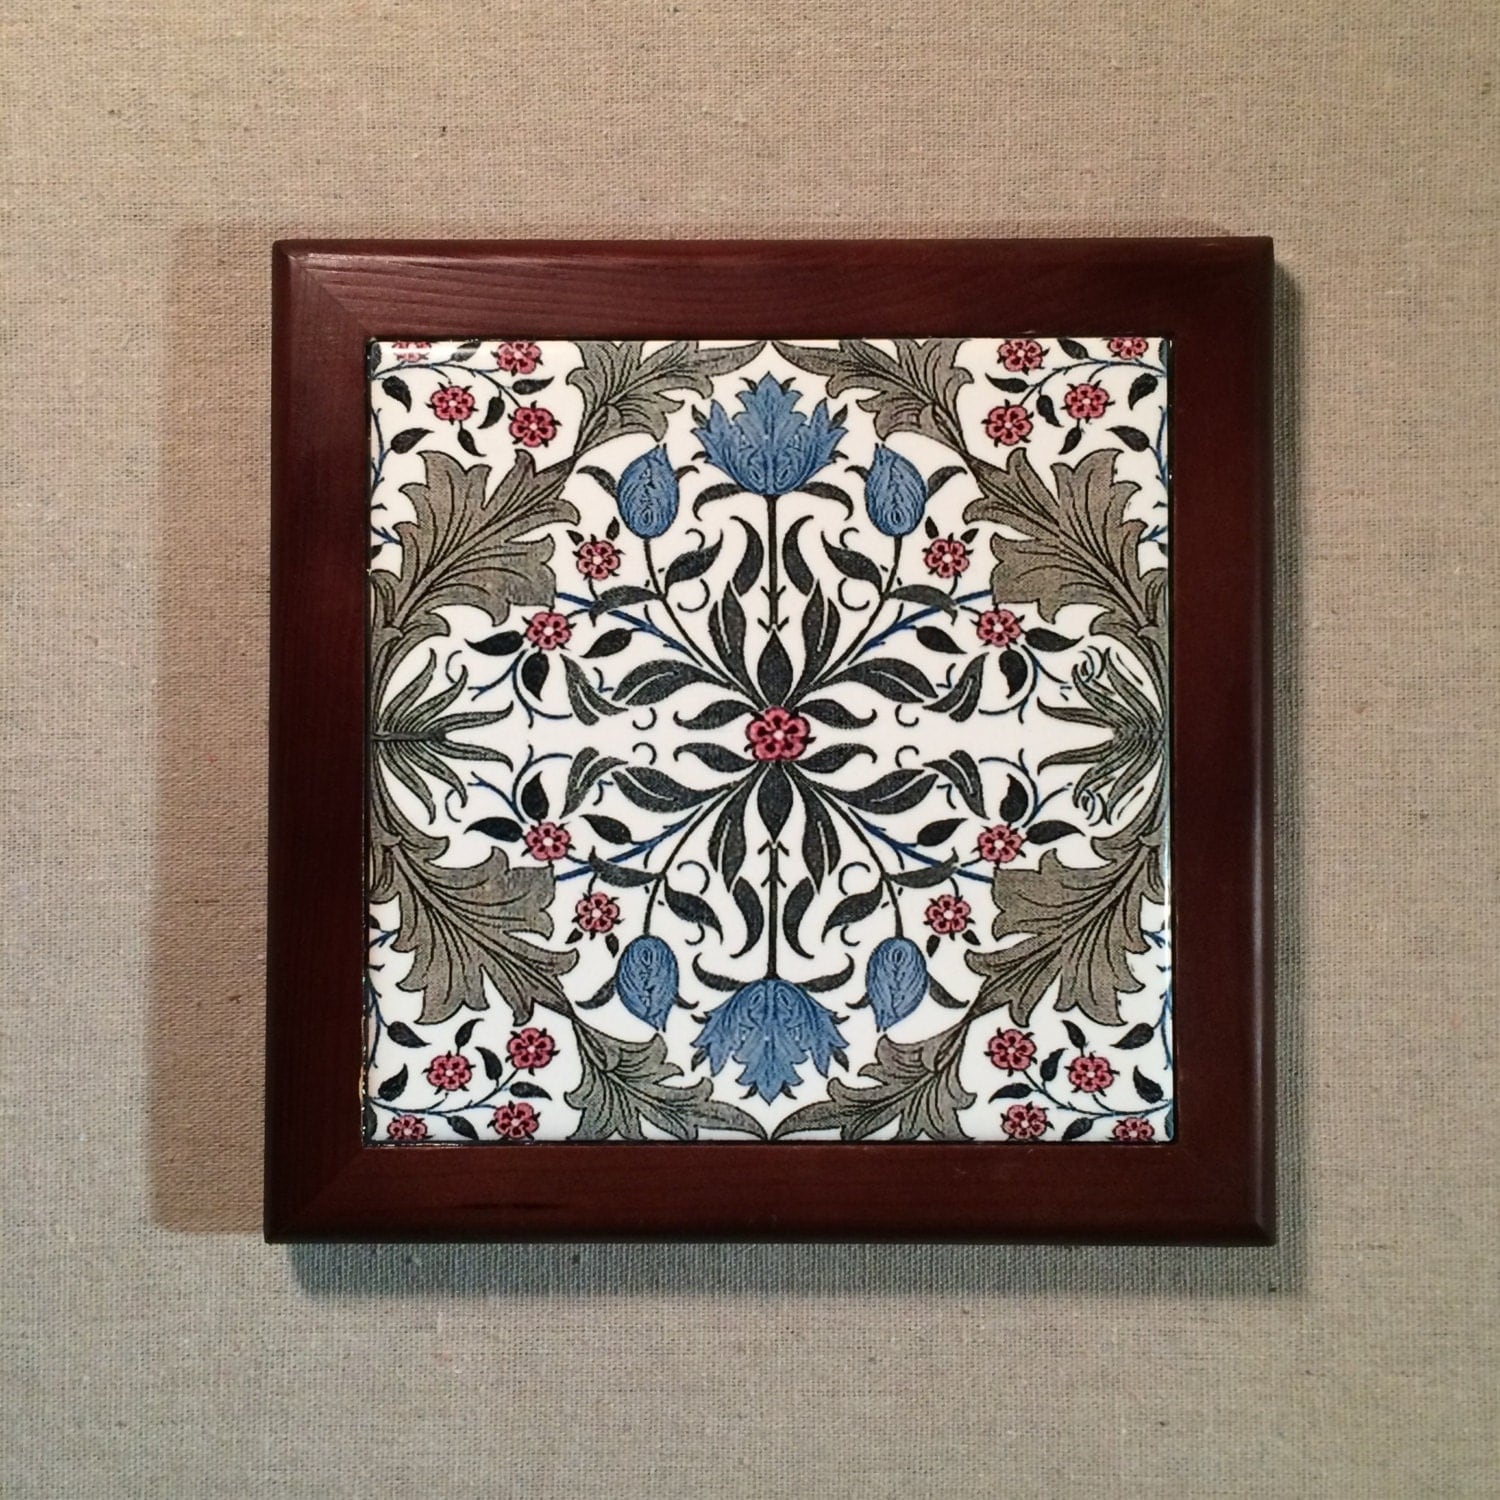 Tulip arts and crafts period design framed tile for Arts and crafts tiles